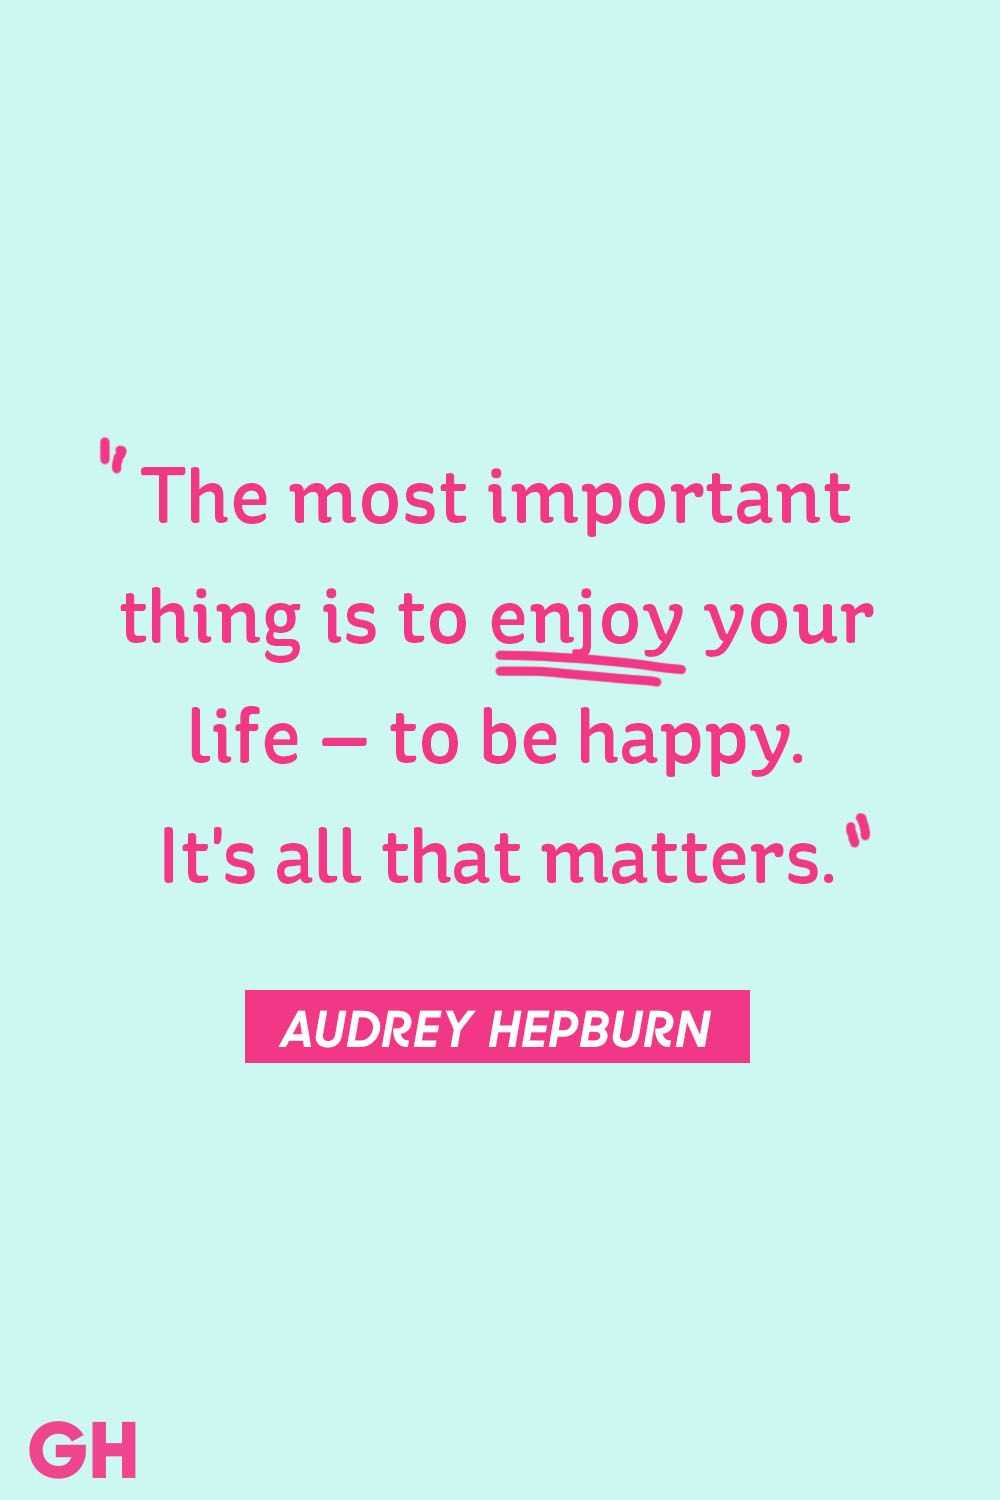 5 Happy Quotes - Best Quotes About Happiness and Joy